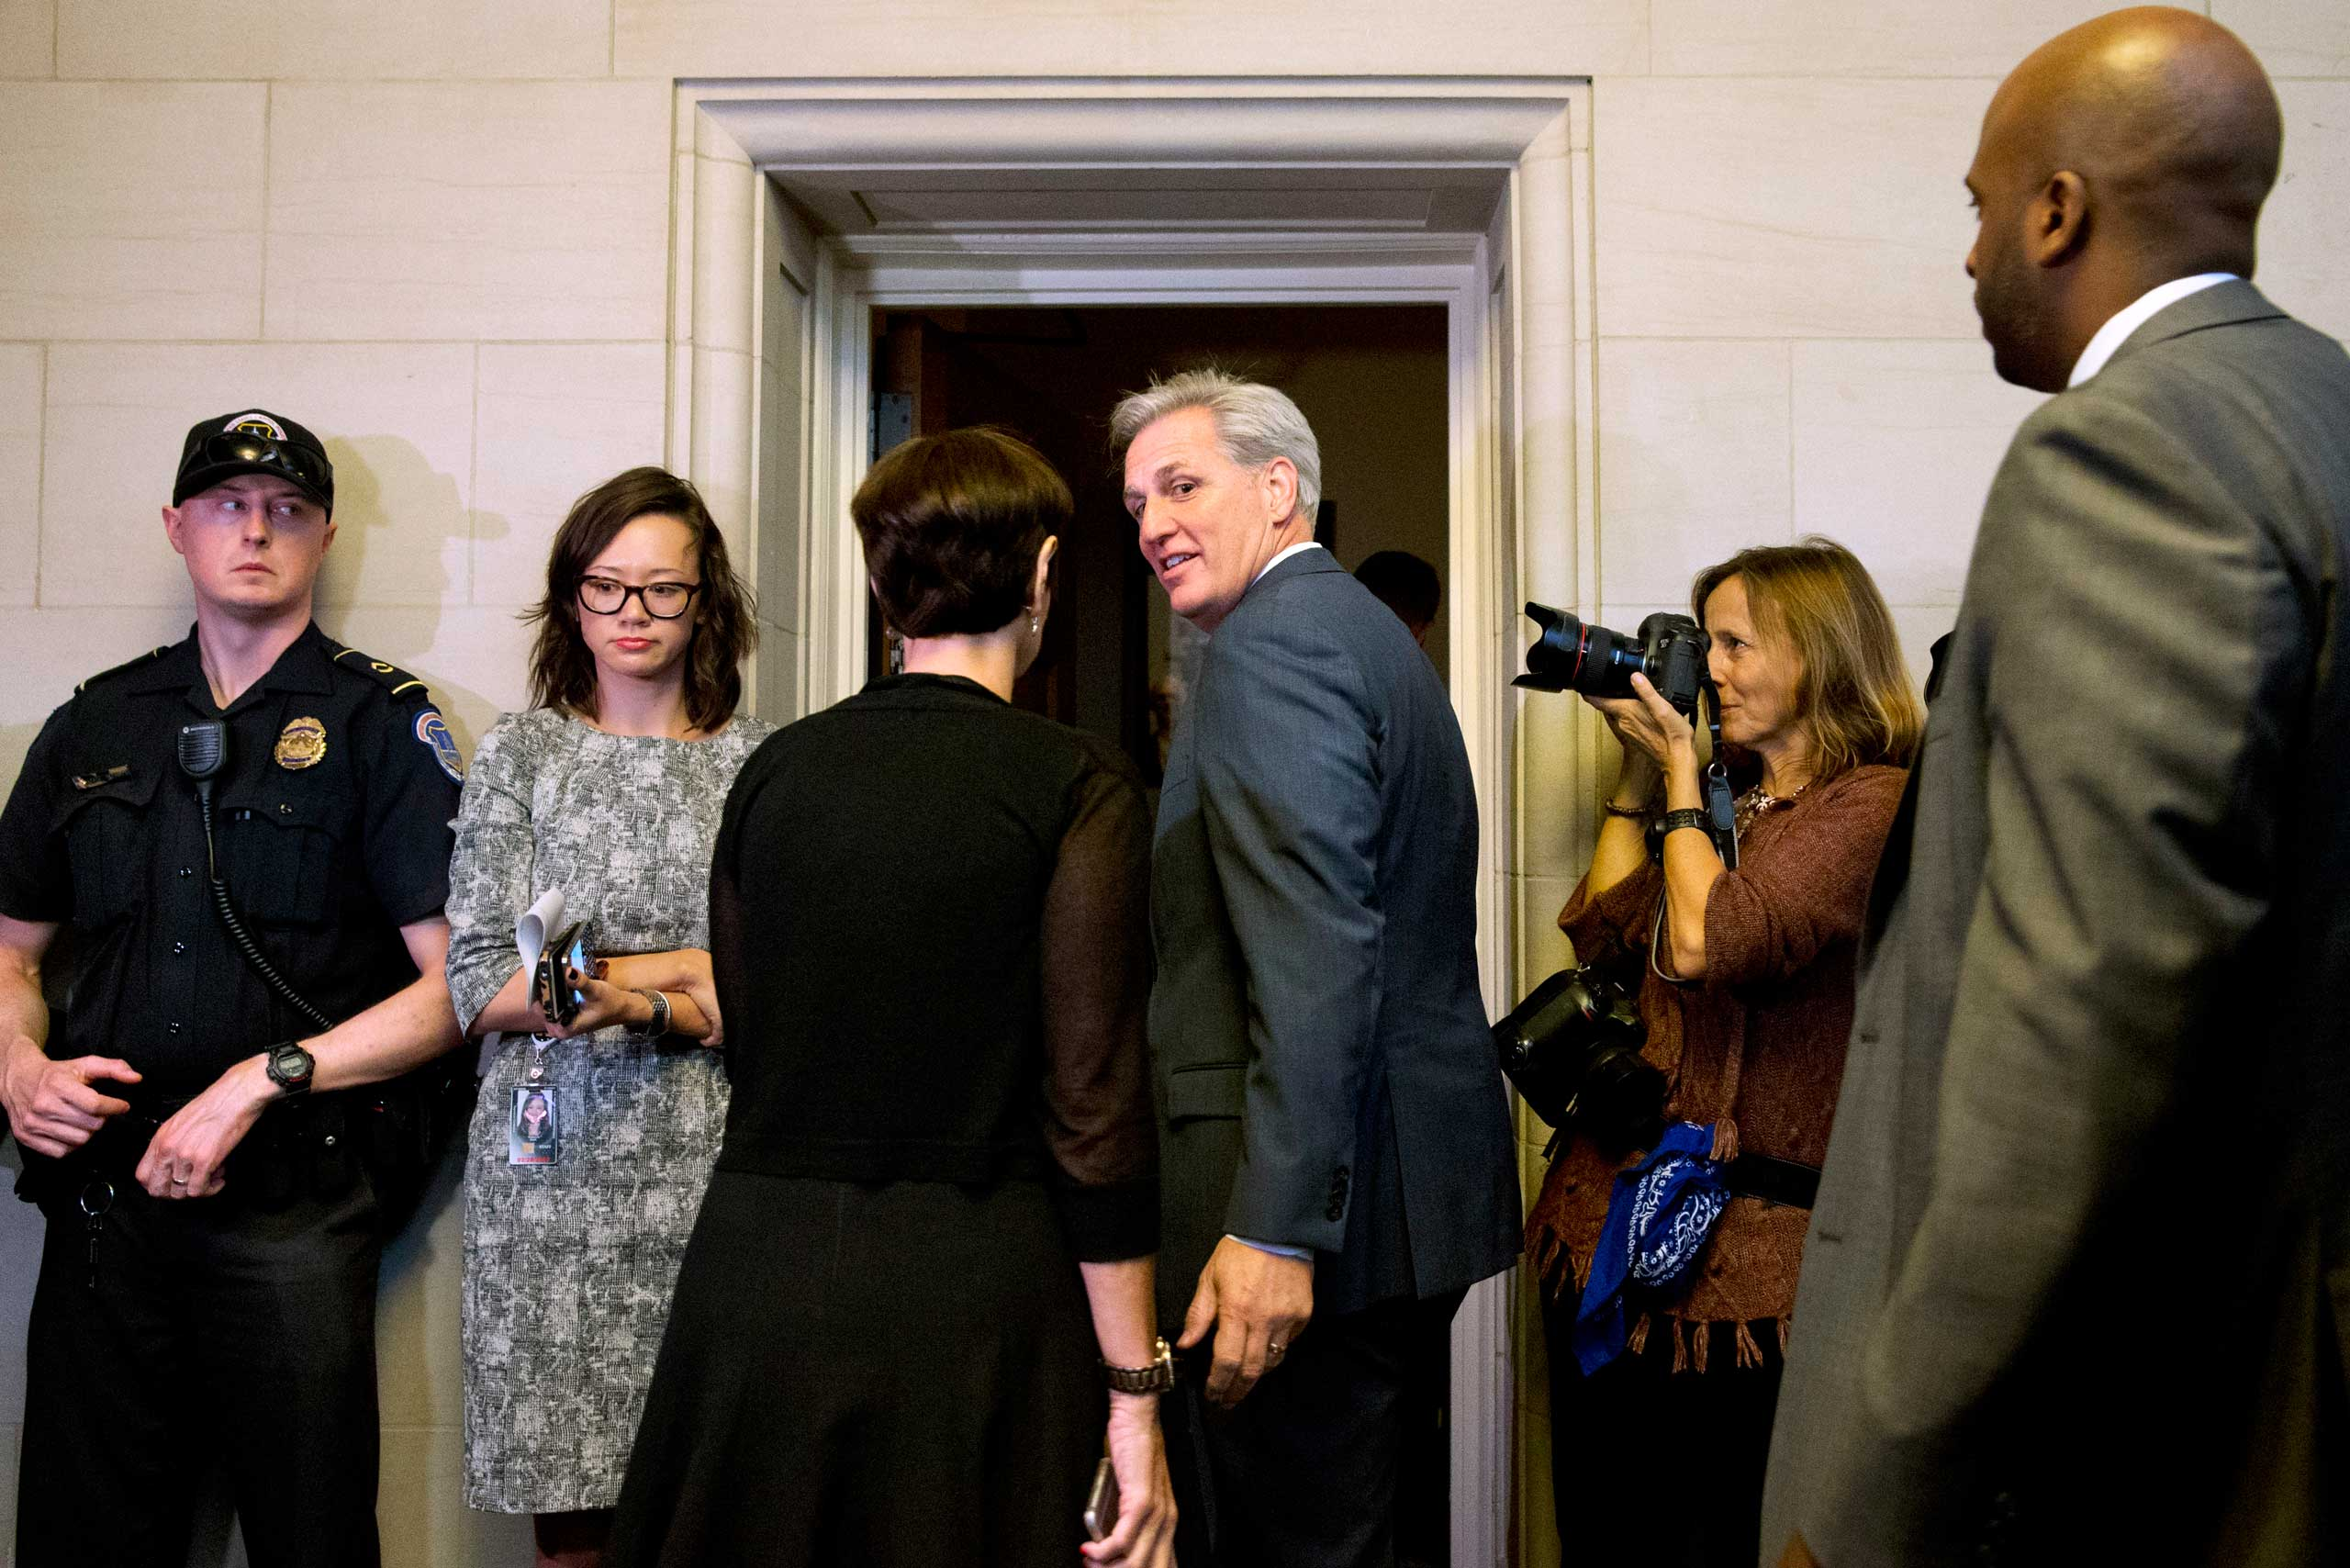 House Majority Leader Kevin McCarthy of Calif., center, turns to his wife Judy McCarthy as they enter a House Republican caucus vote on its nominee to replace House Speaker John Boehner, in Washington D.D., Oct. 8, 2015.